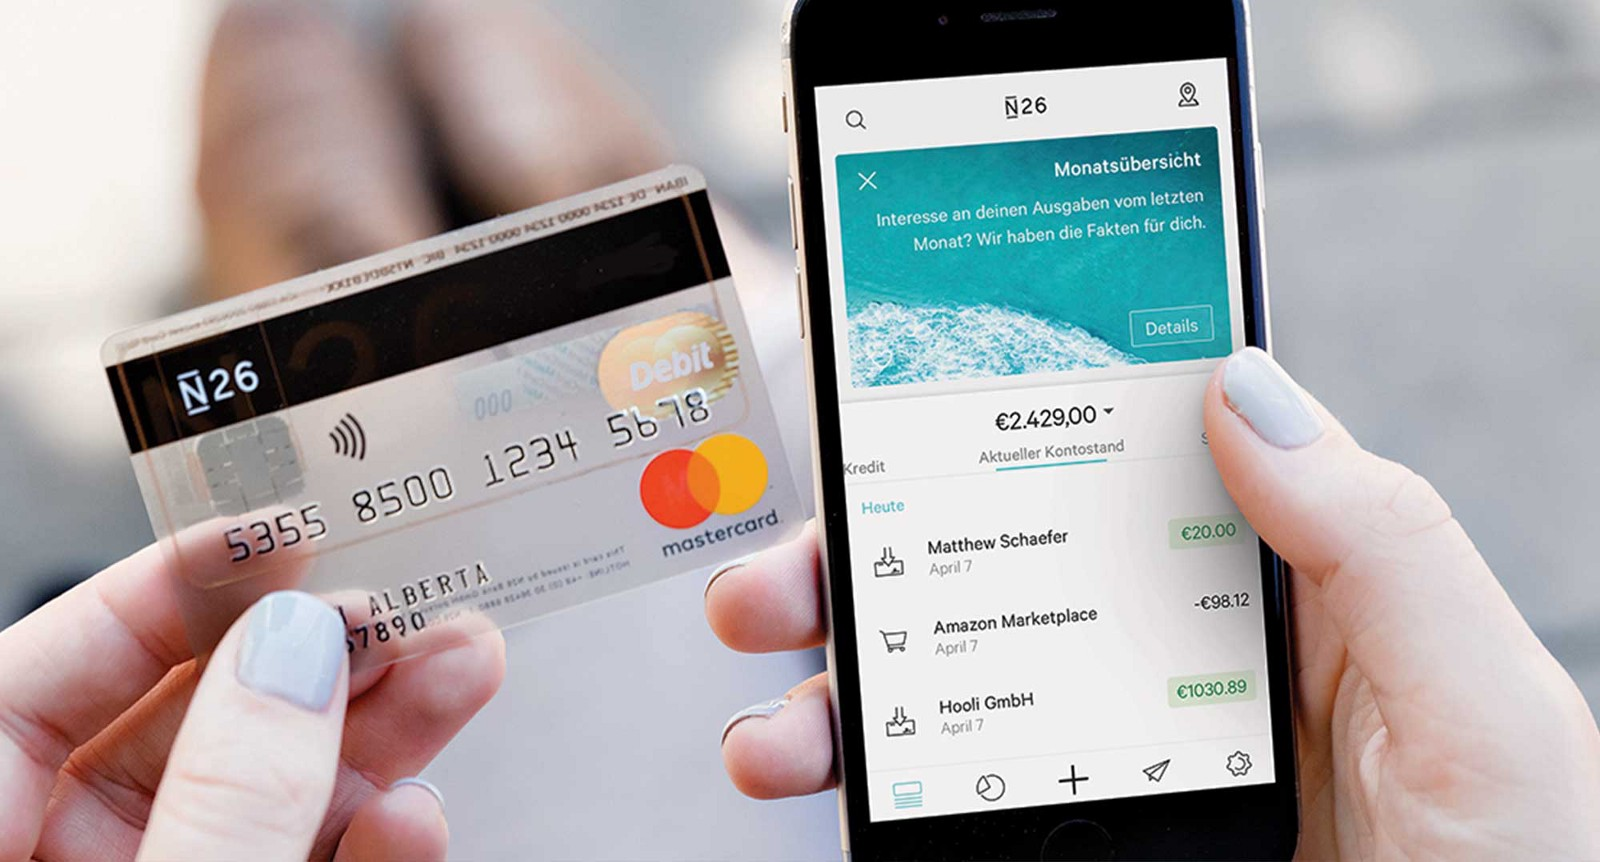 The best of Europe's startup banks, compared